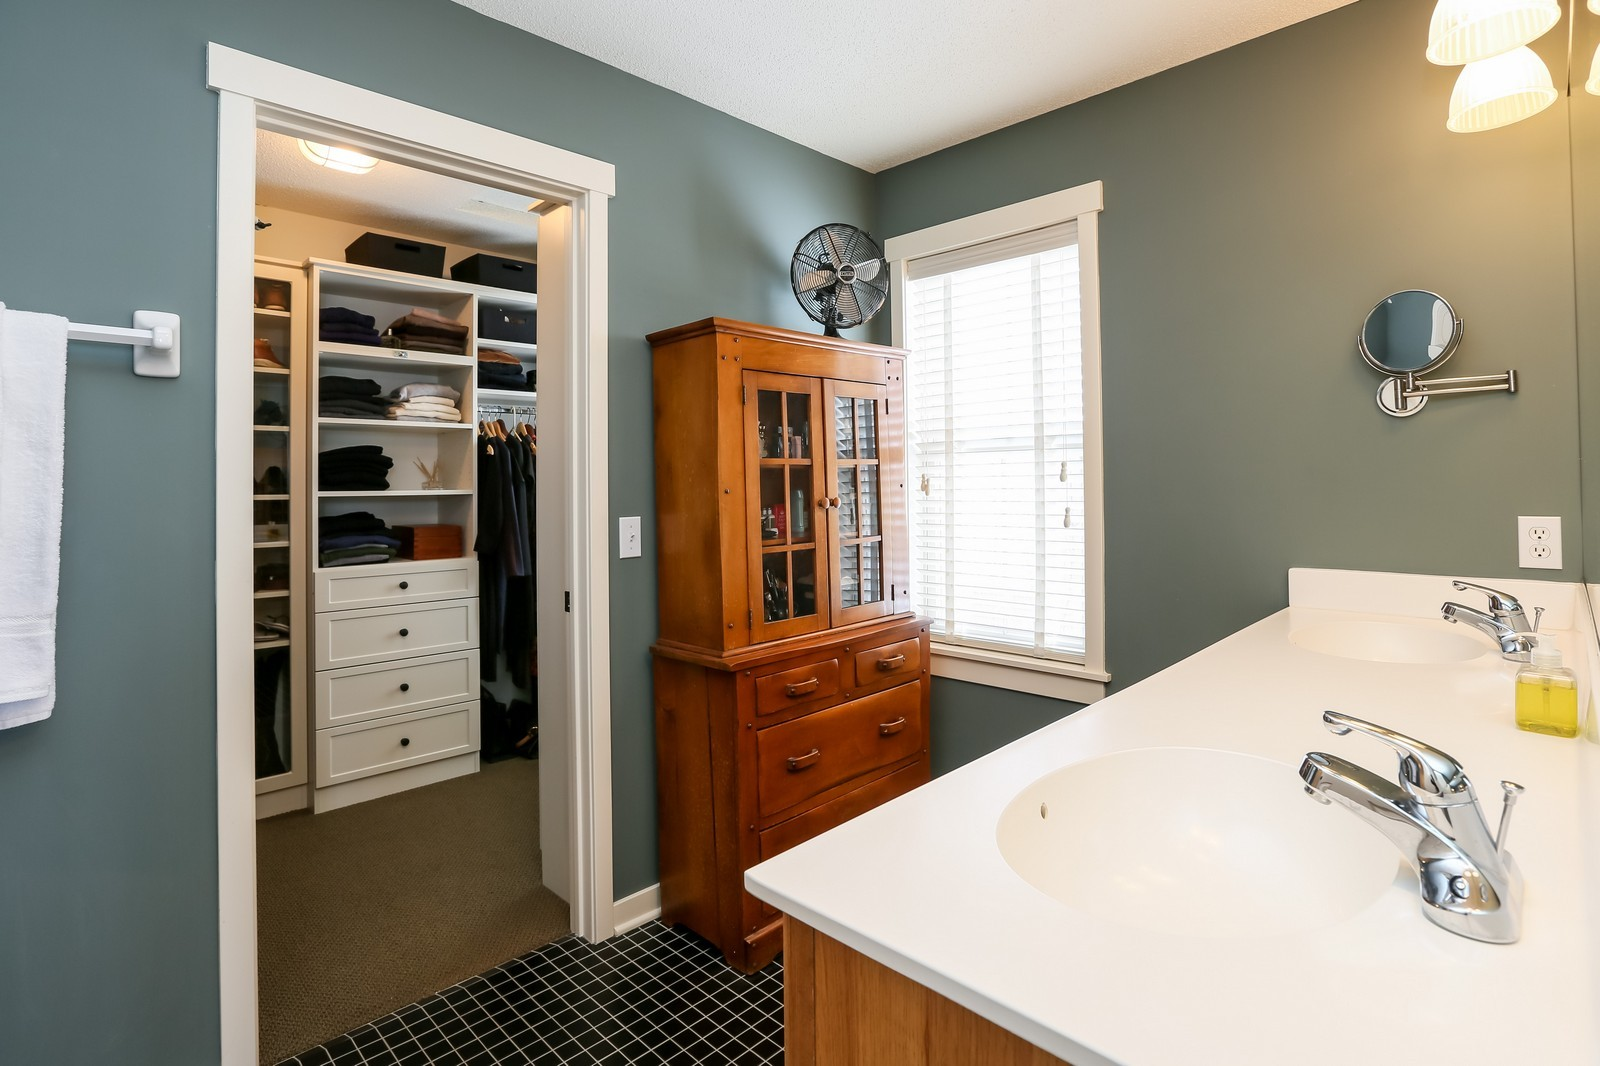 Real Estate Photography - 170 Rutherford Rd, Stillwater, MN, 55082 - Master Bathroom